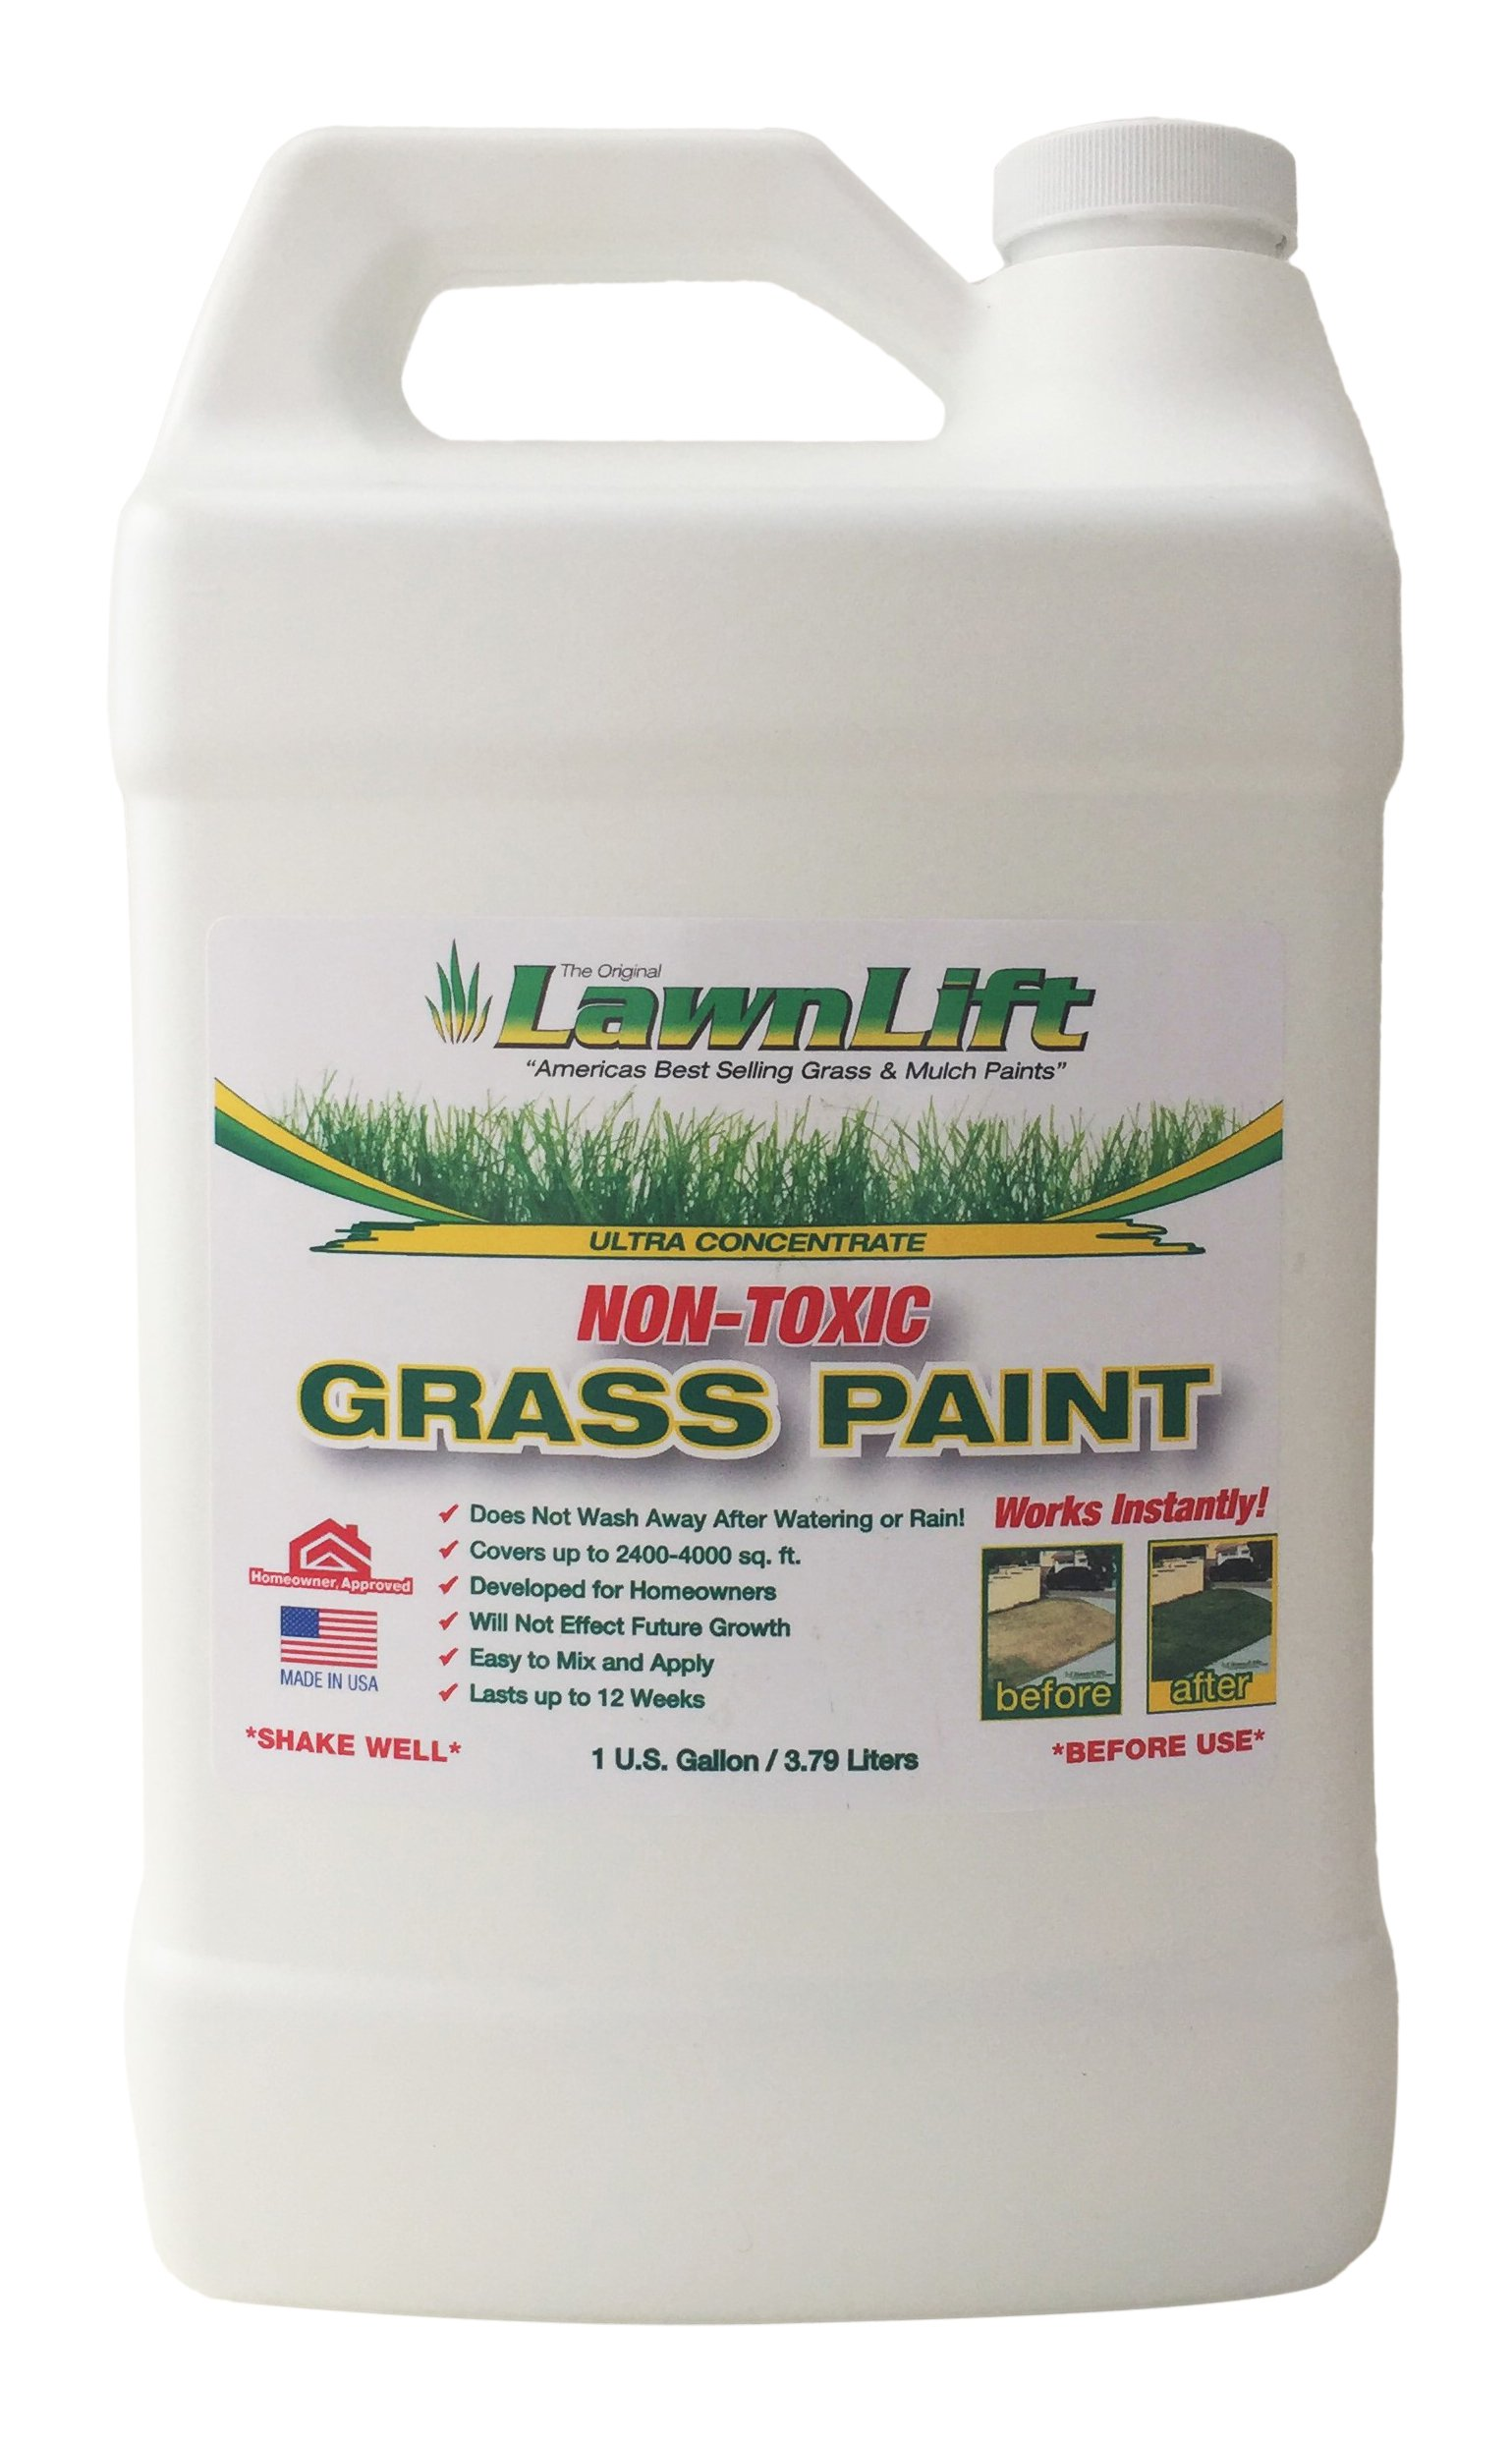 Lawn Paint Concentrated Lawn Paint, 1 gallon